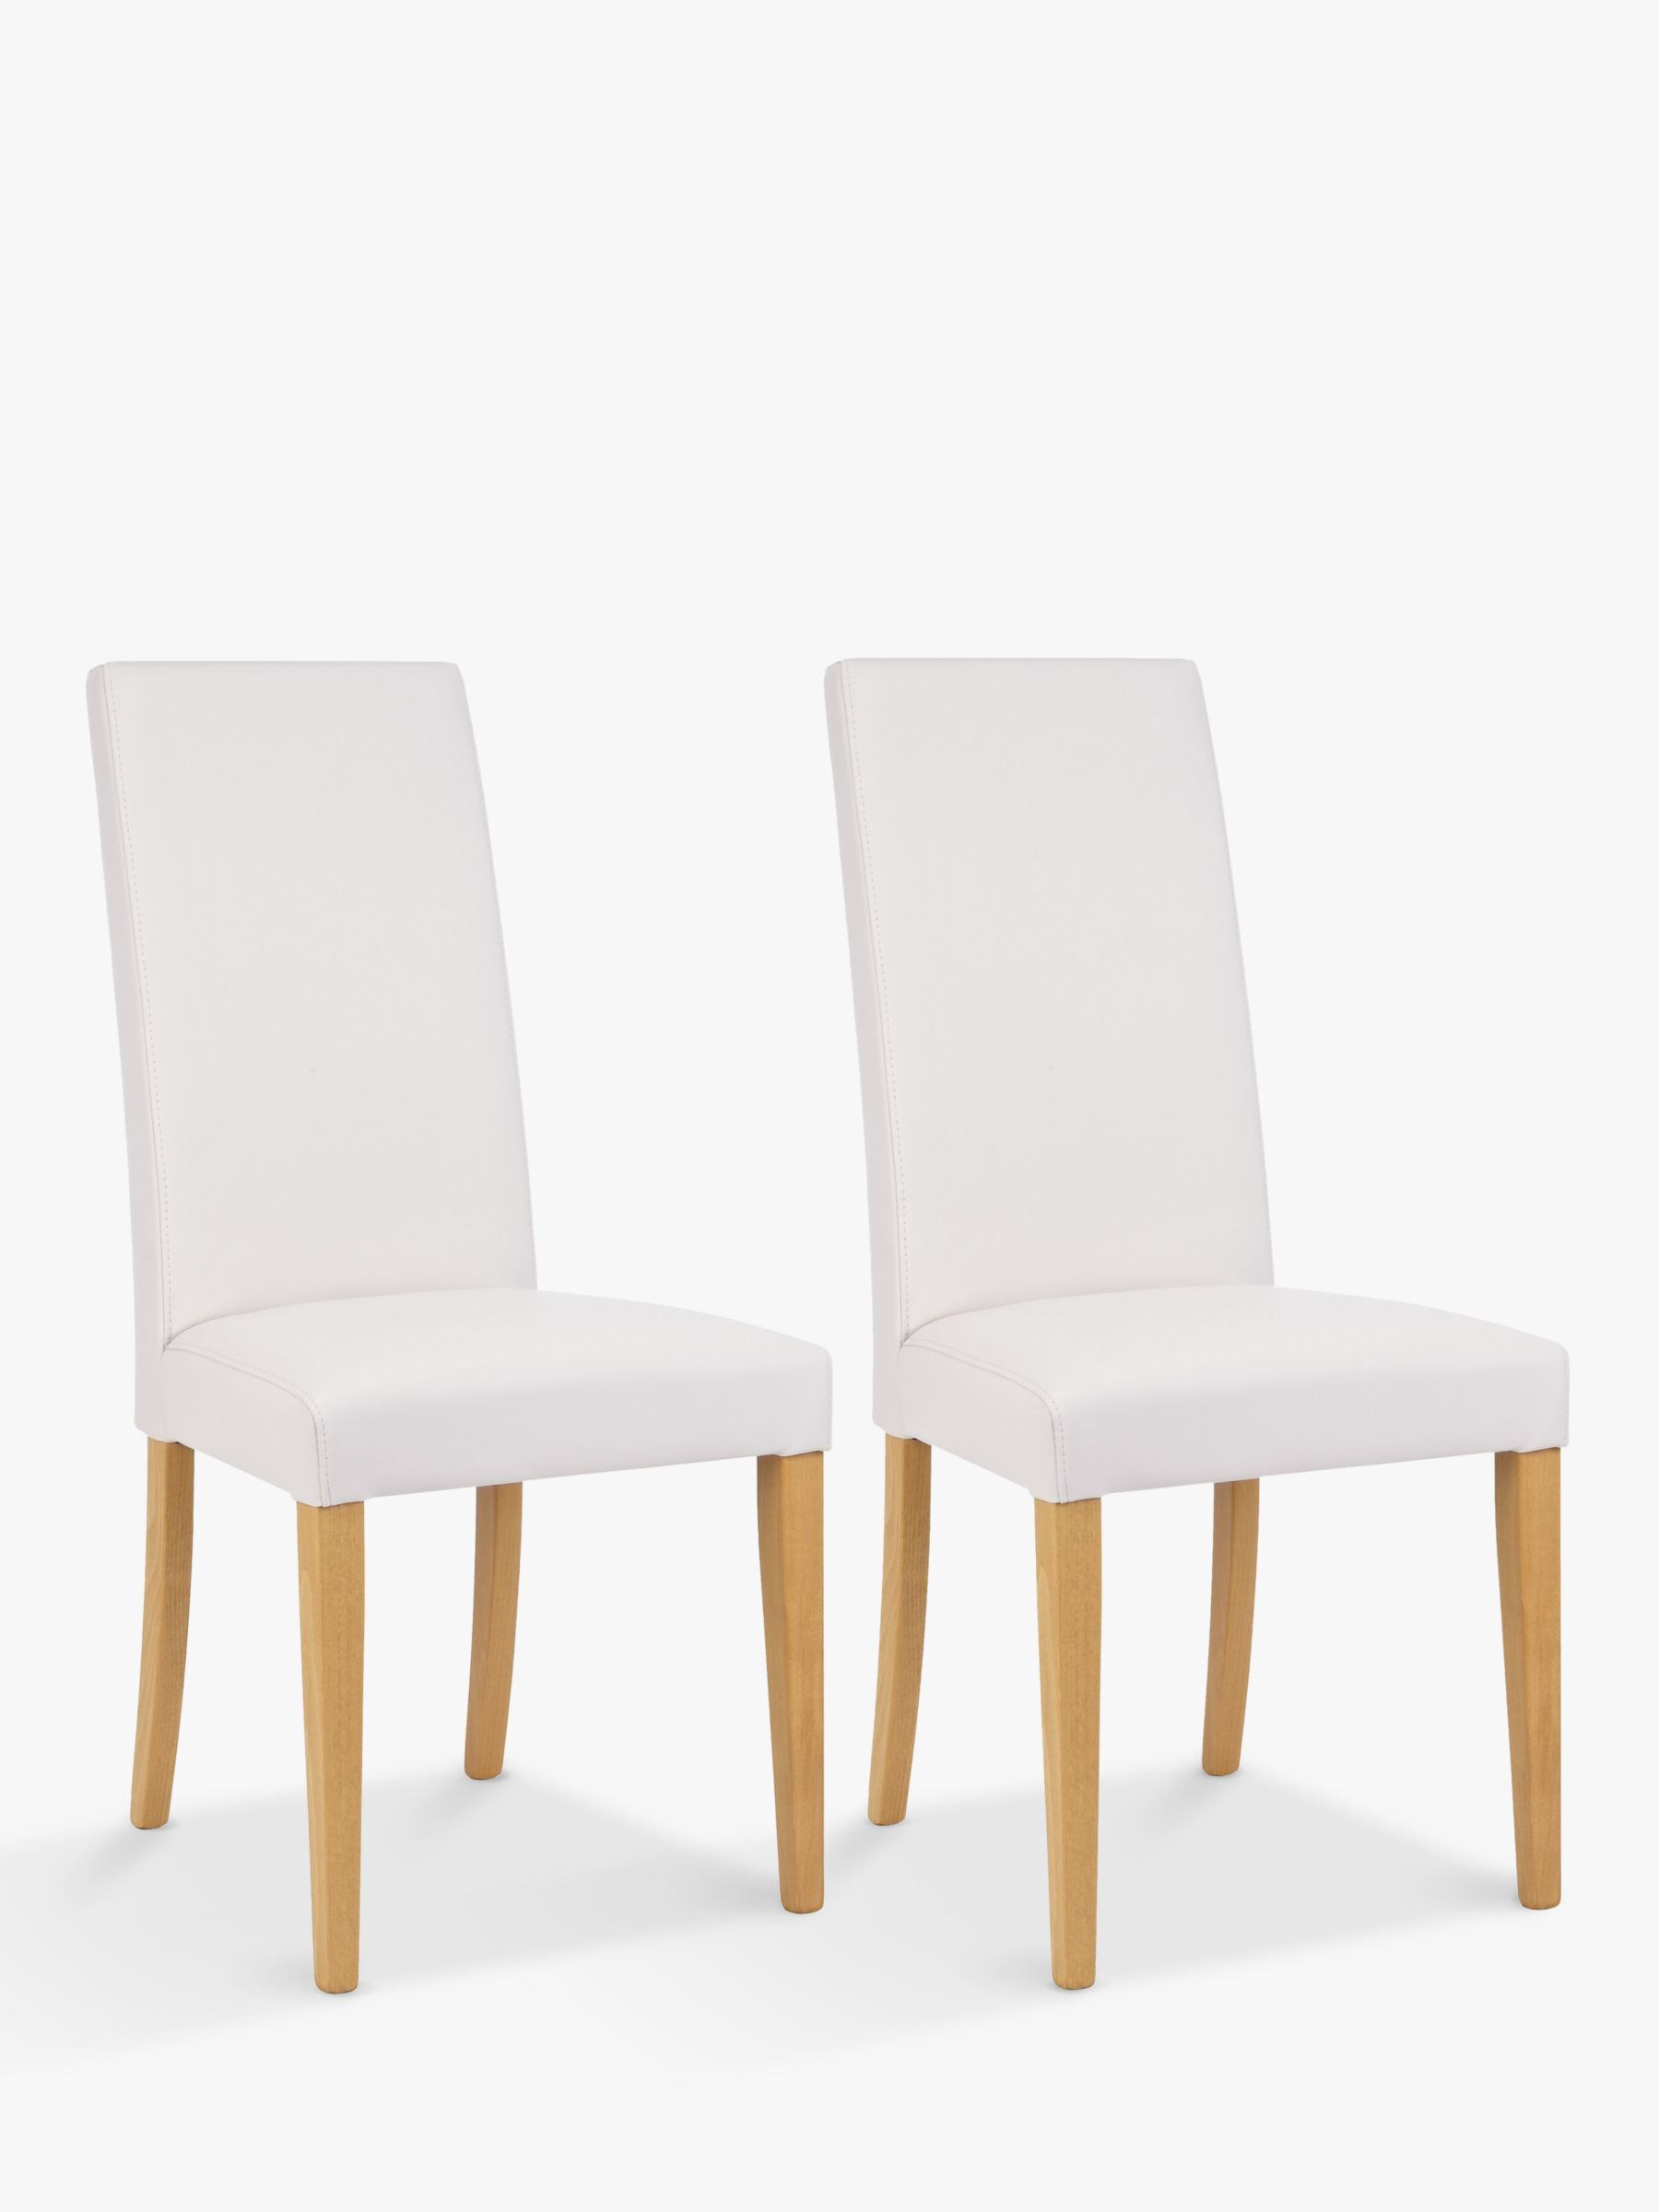 Tremendous John Lewis Partners Lydia Leather Effect Dining Chairs Set Of 2 Fsc Certified Beech Wood Chalk Gamerscity Chair Design For Home Gamerscityorg